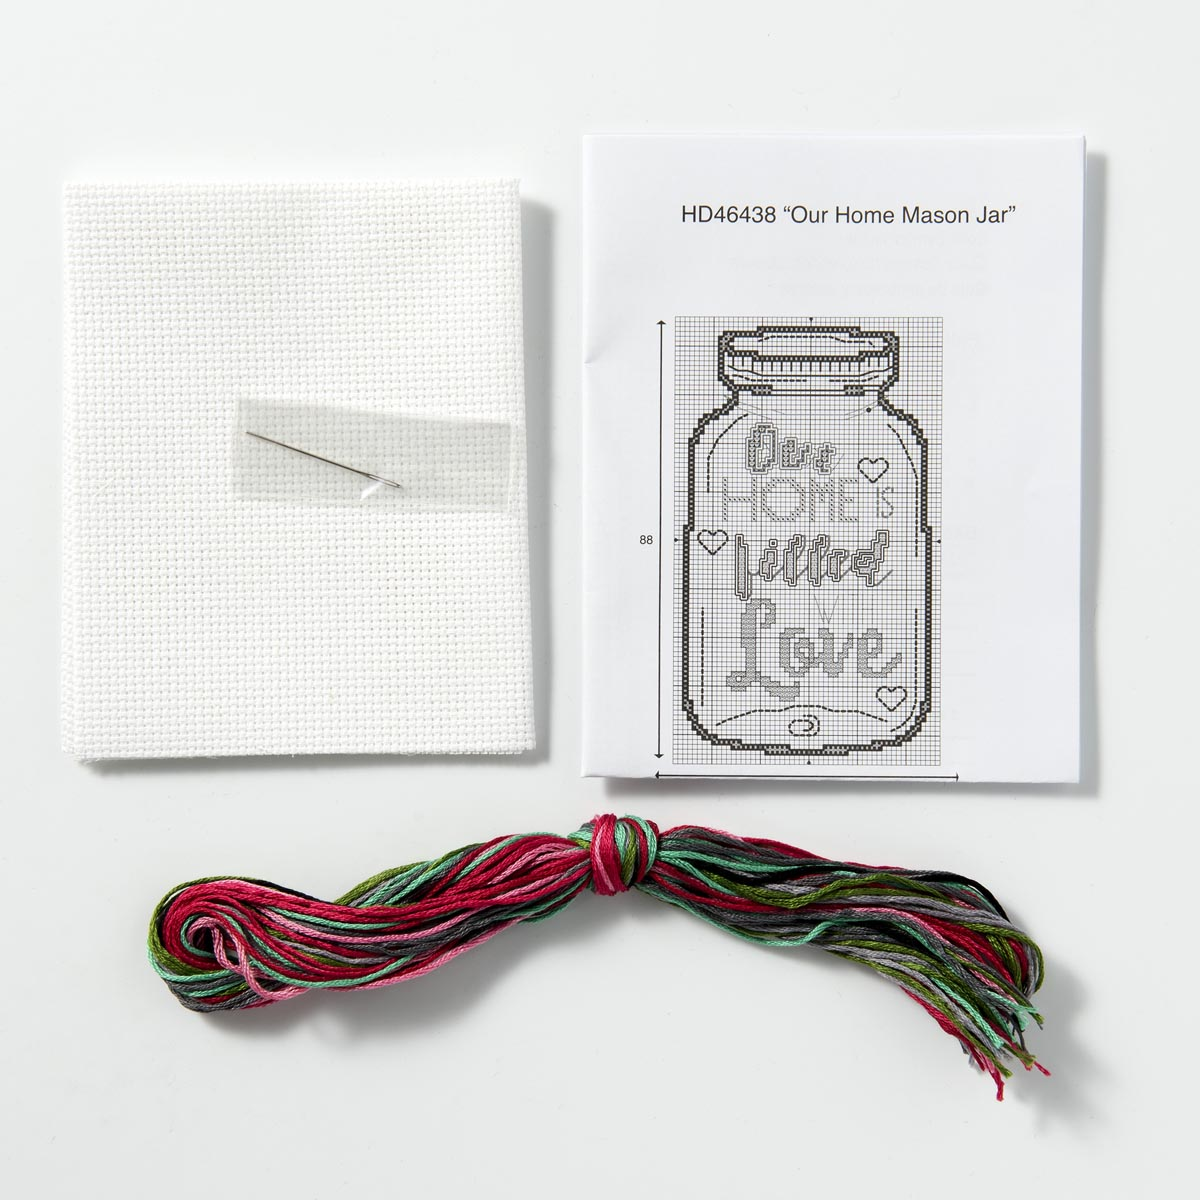 Bucilla ® My 1st Stitch™ - Counted Cross Stitch Kits - Our Home Mason Jar - WM46438E